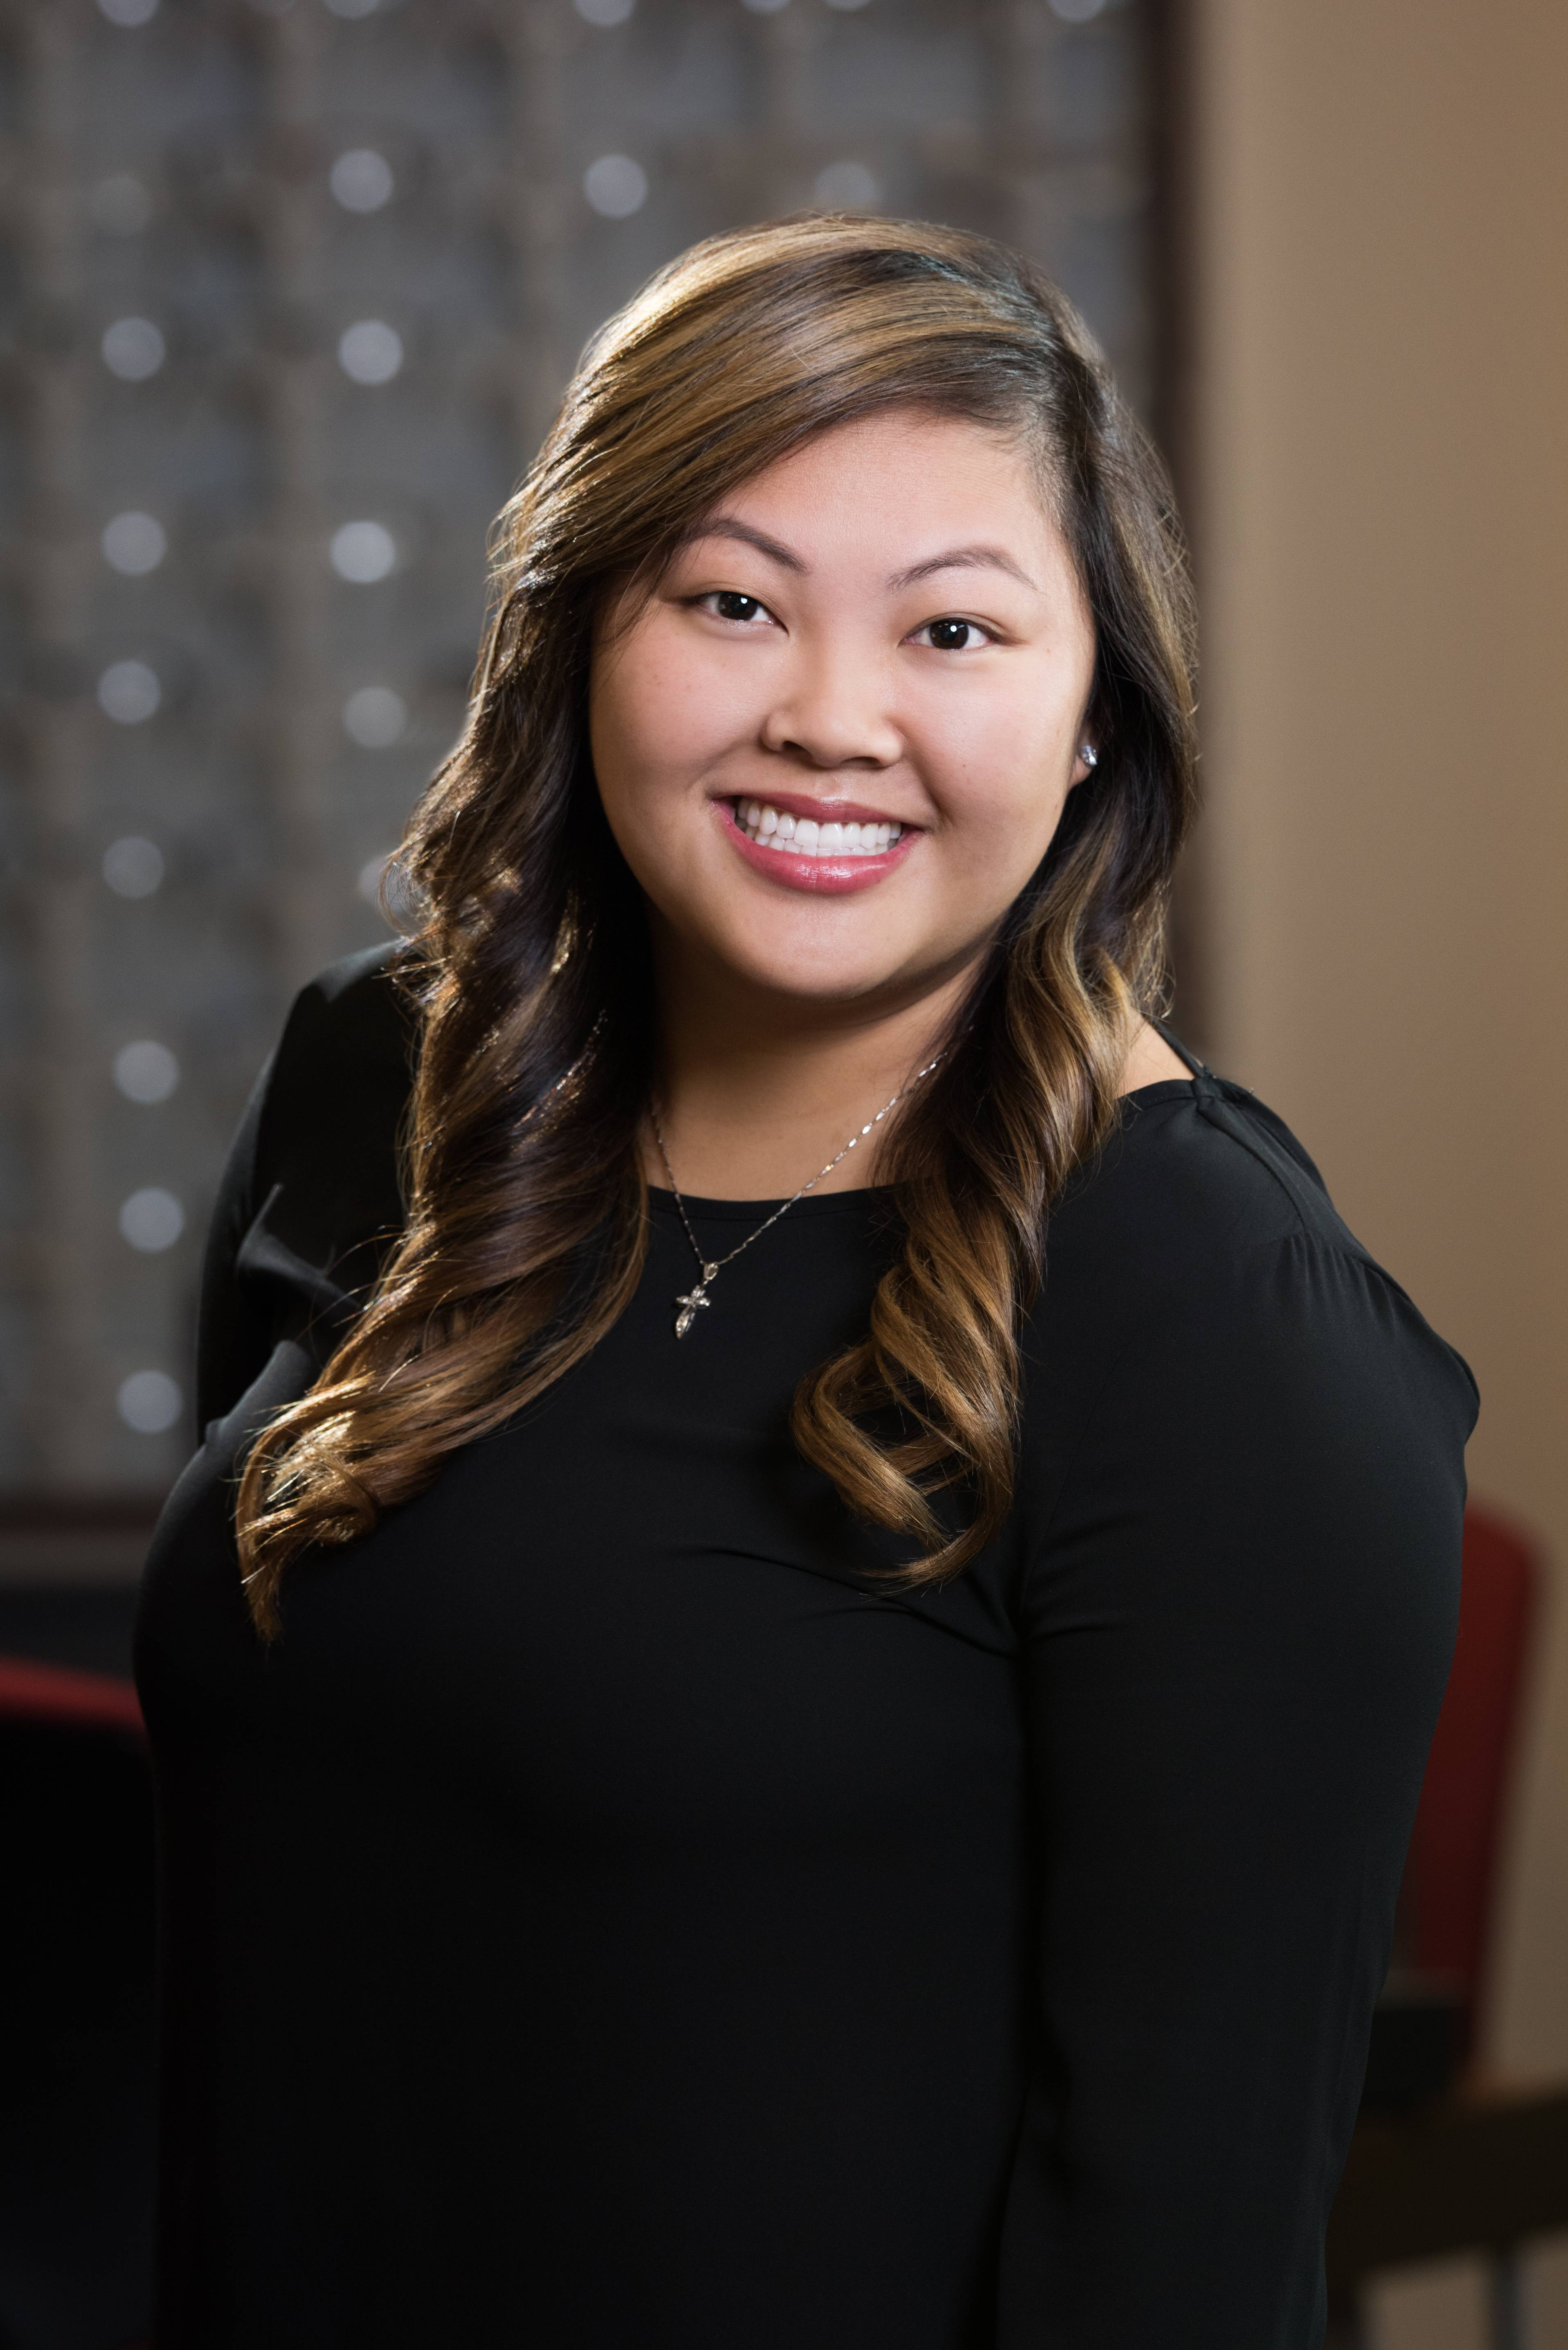 TSO-Headshots-Nguyen-Formal